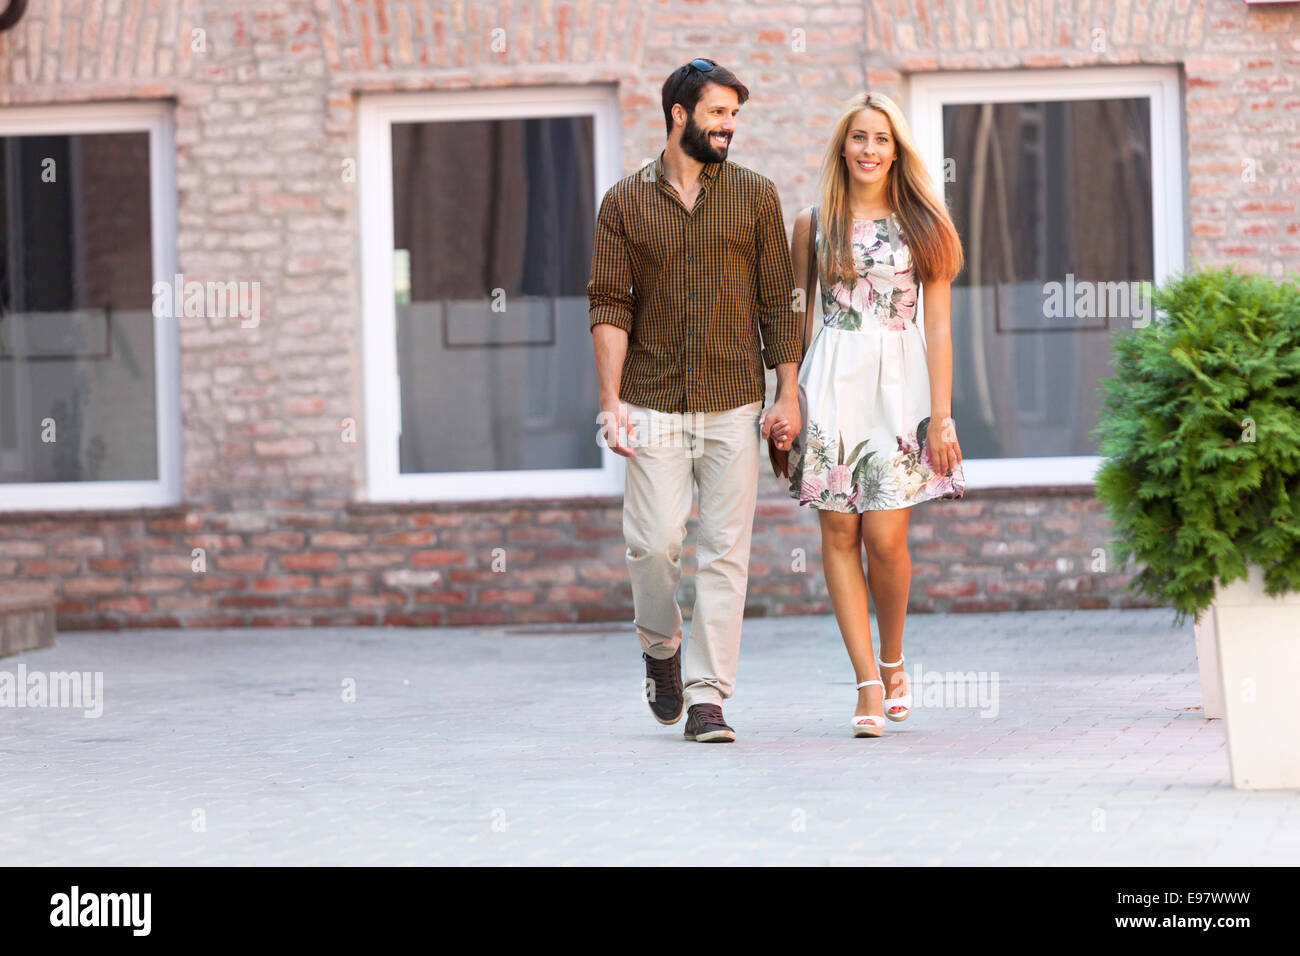 Happy young couple takes a walk holding hands - Stock Image